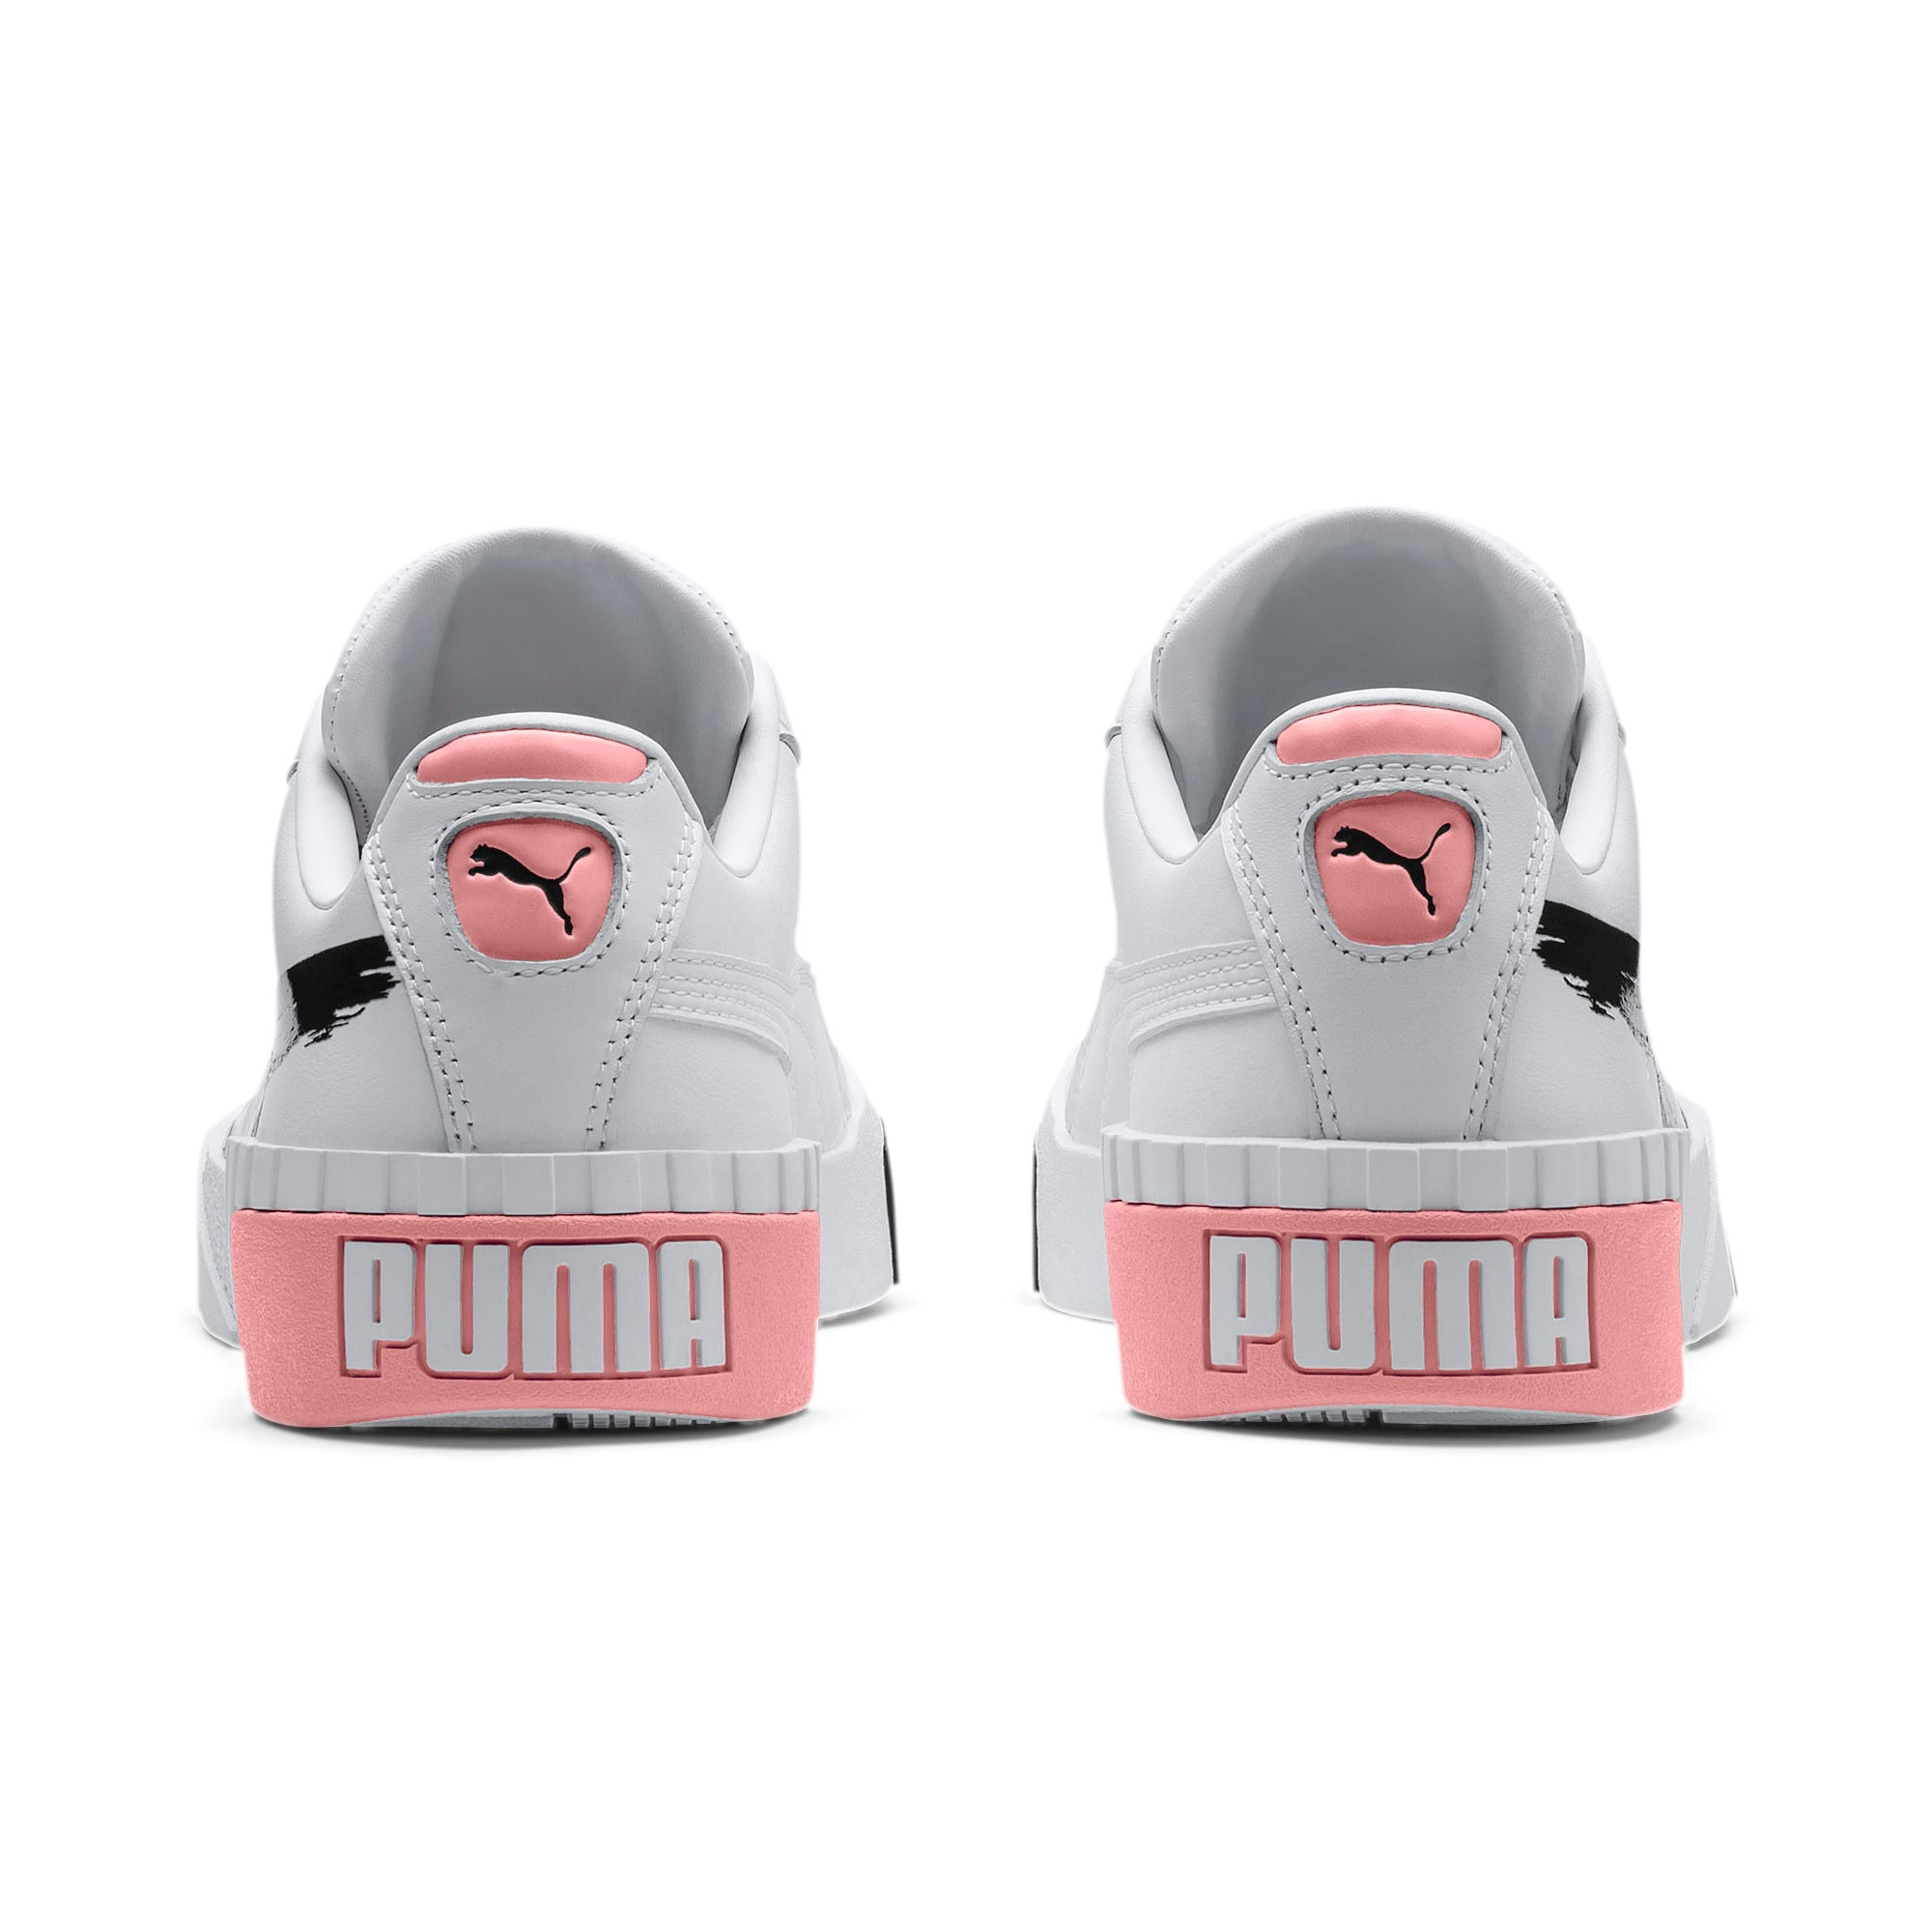 Thumbnail 3 of PUMA x MAYBELLINE Cali Women's Trainers, Puma White-Puma Black, medium